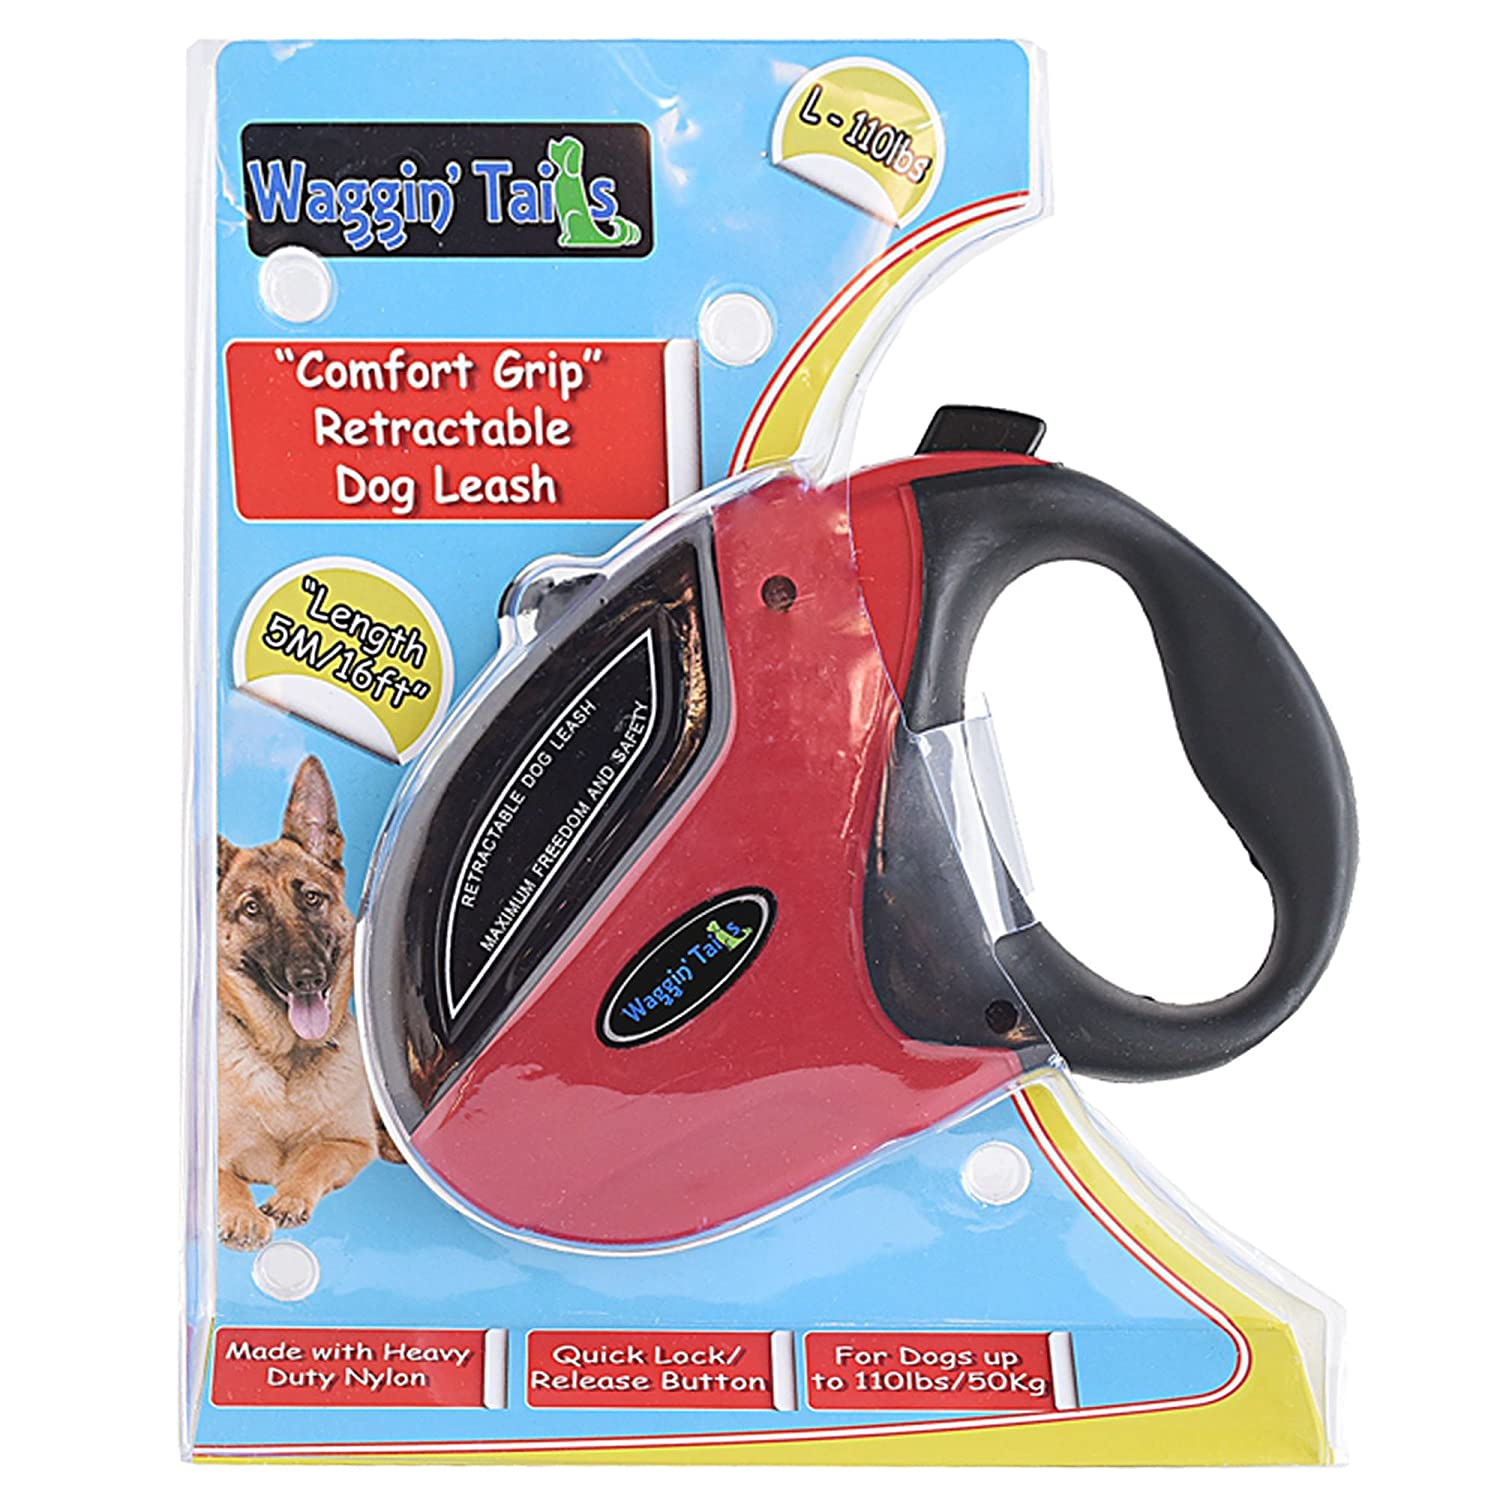 """Comfort Grip"" Retractable Dog Leash 16FT Premium Nylon Tape Leash for Small, Medium or Large Dogs up to 110lbs by Waggin Tails Co The Noble Fox Co"